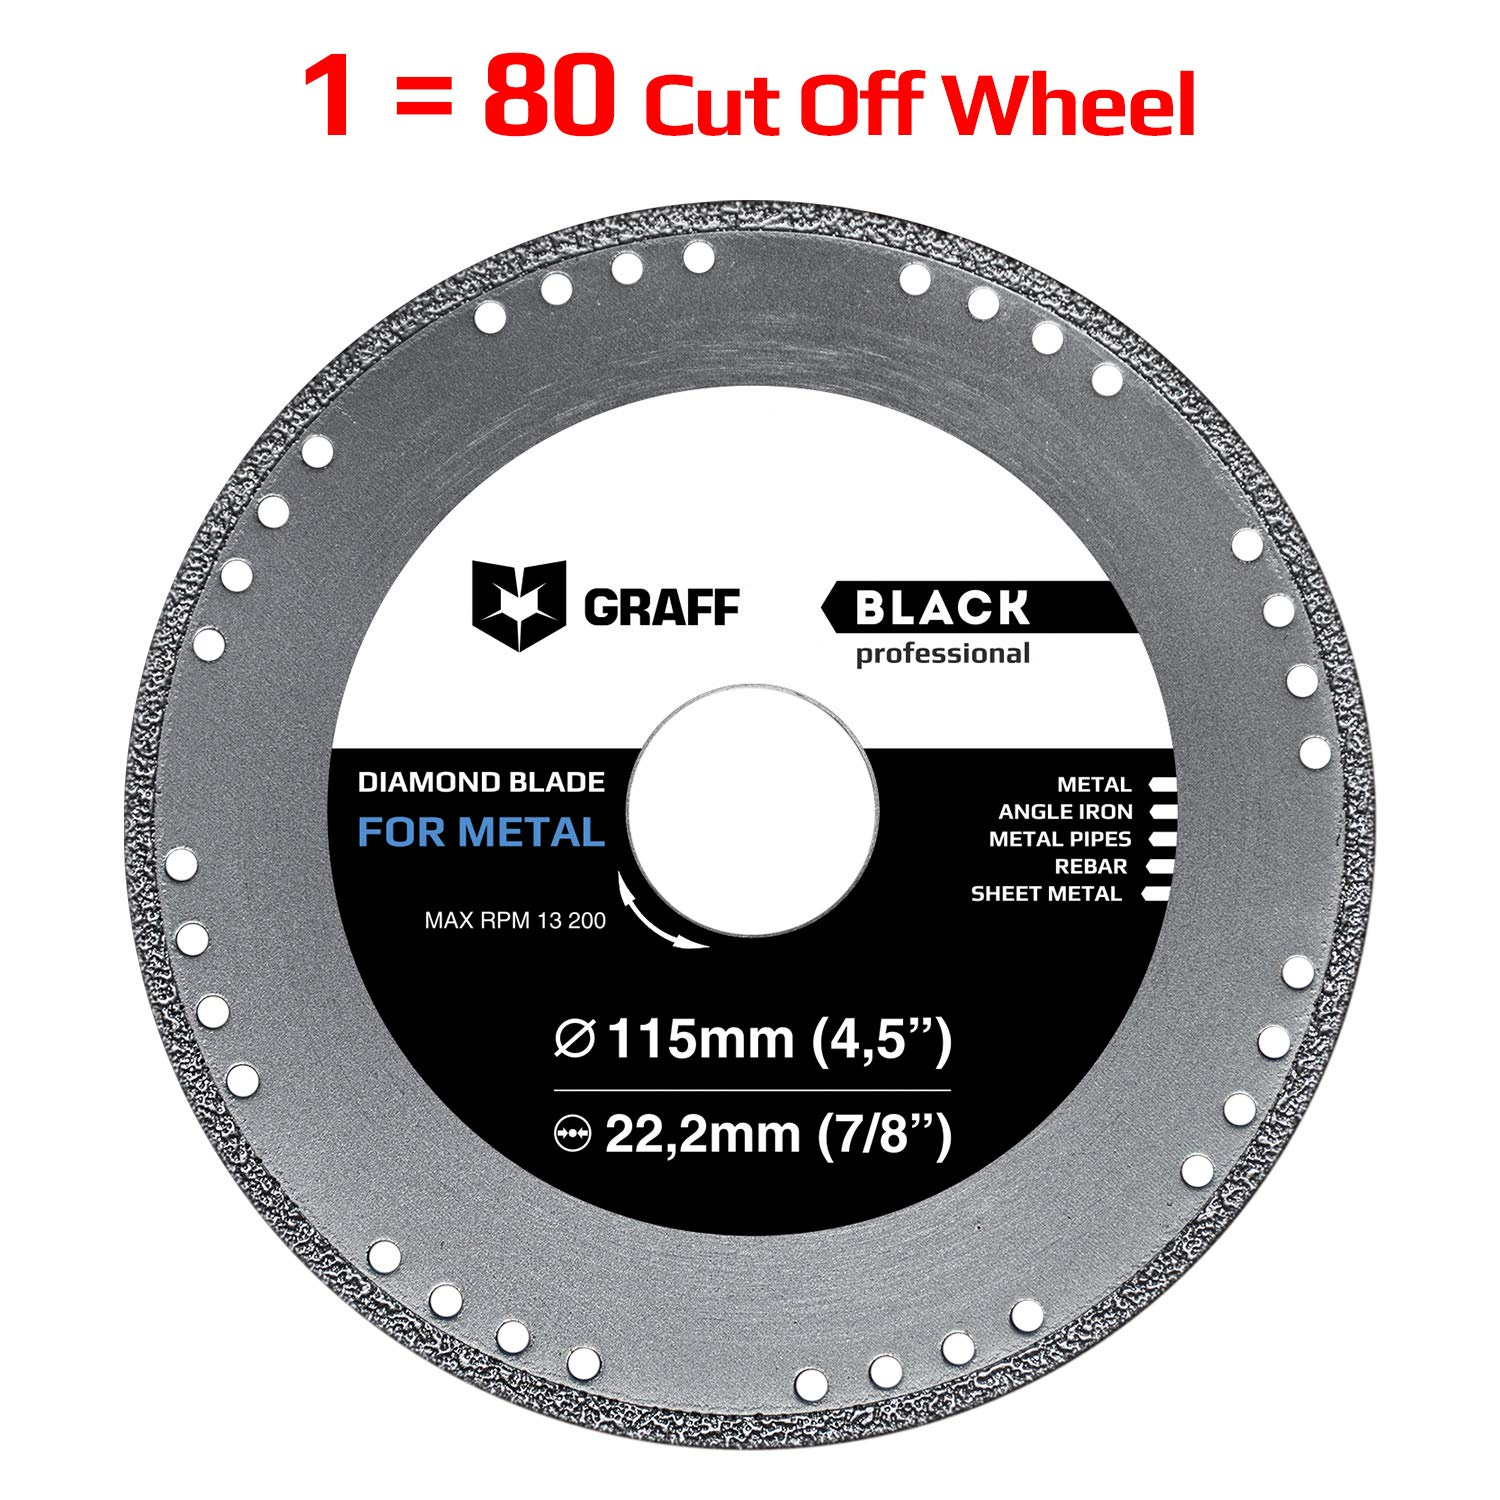 Cut Off Wheel GRAFF Black 4-1/2 Inch for Sheet Metal, Angle Iron, Pipes, Rebar, 7/8 Inch Arbor, Diamond Edge (4.5 Inch (115mm))